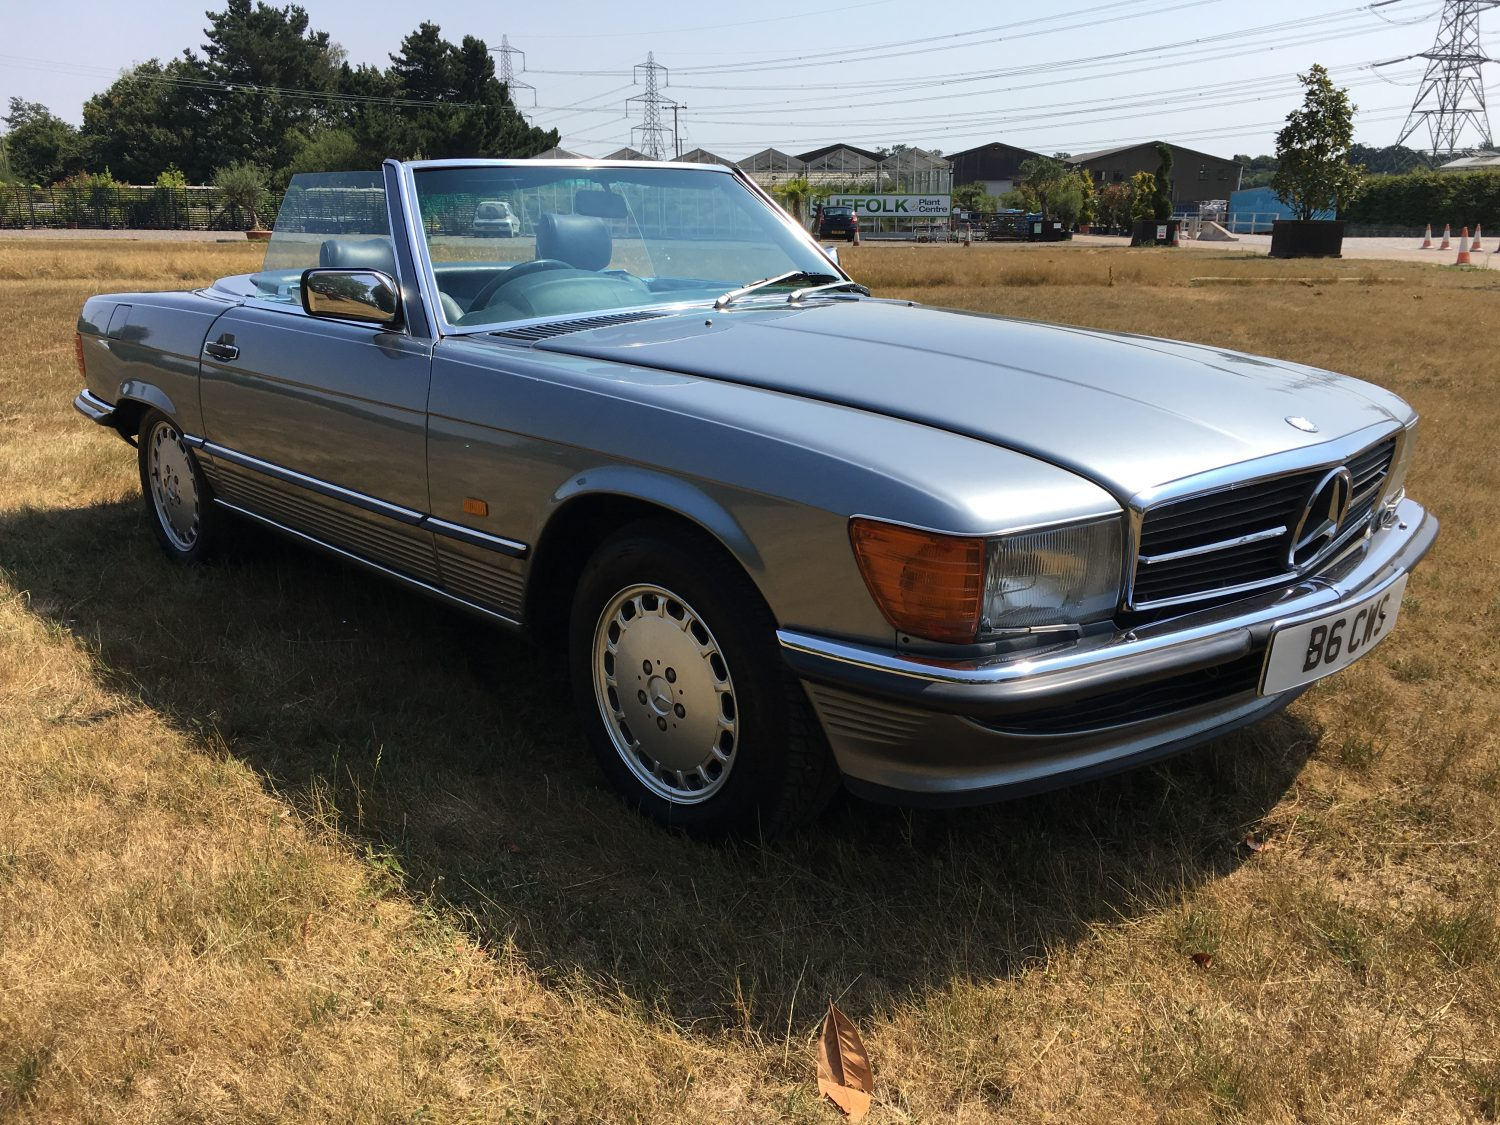 Mercedes SL500 – The very first clean